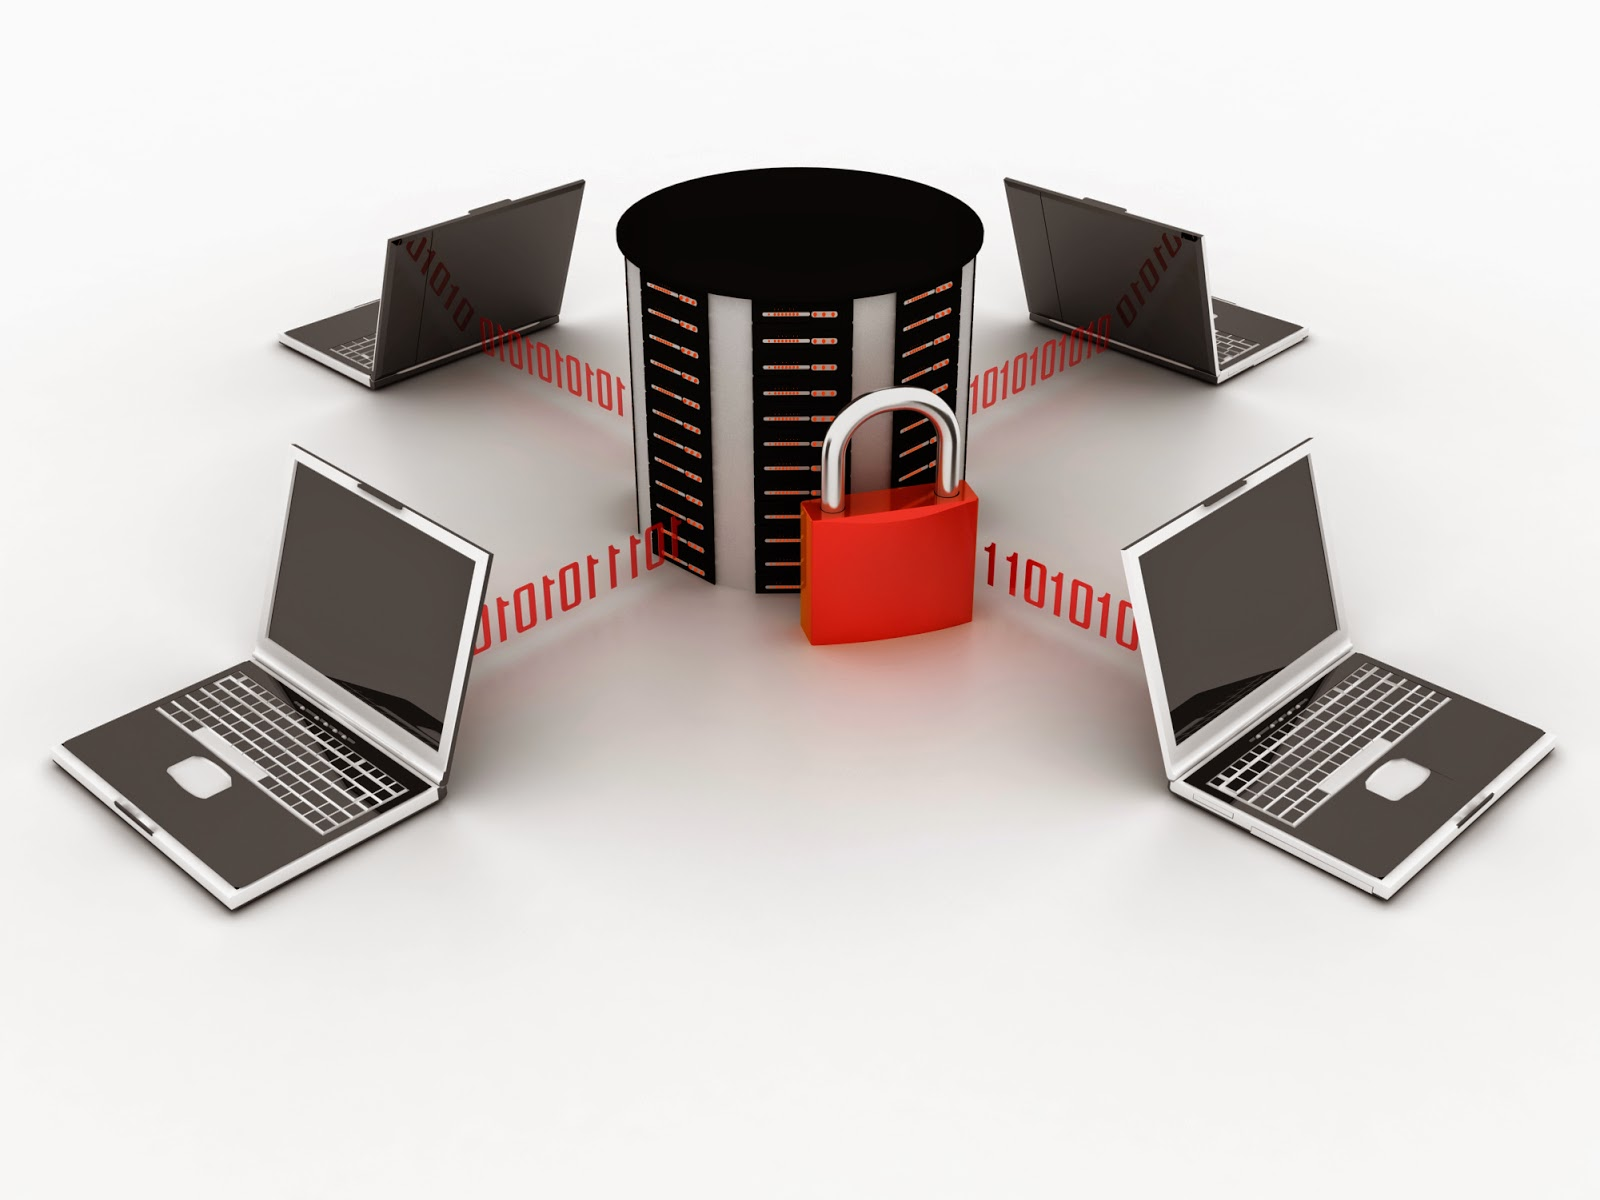 Database Security - How Do You Go About Protecting Your Sensitive Data?